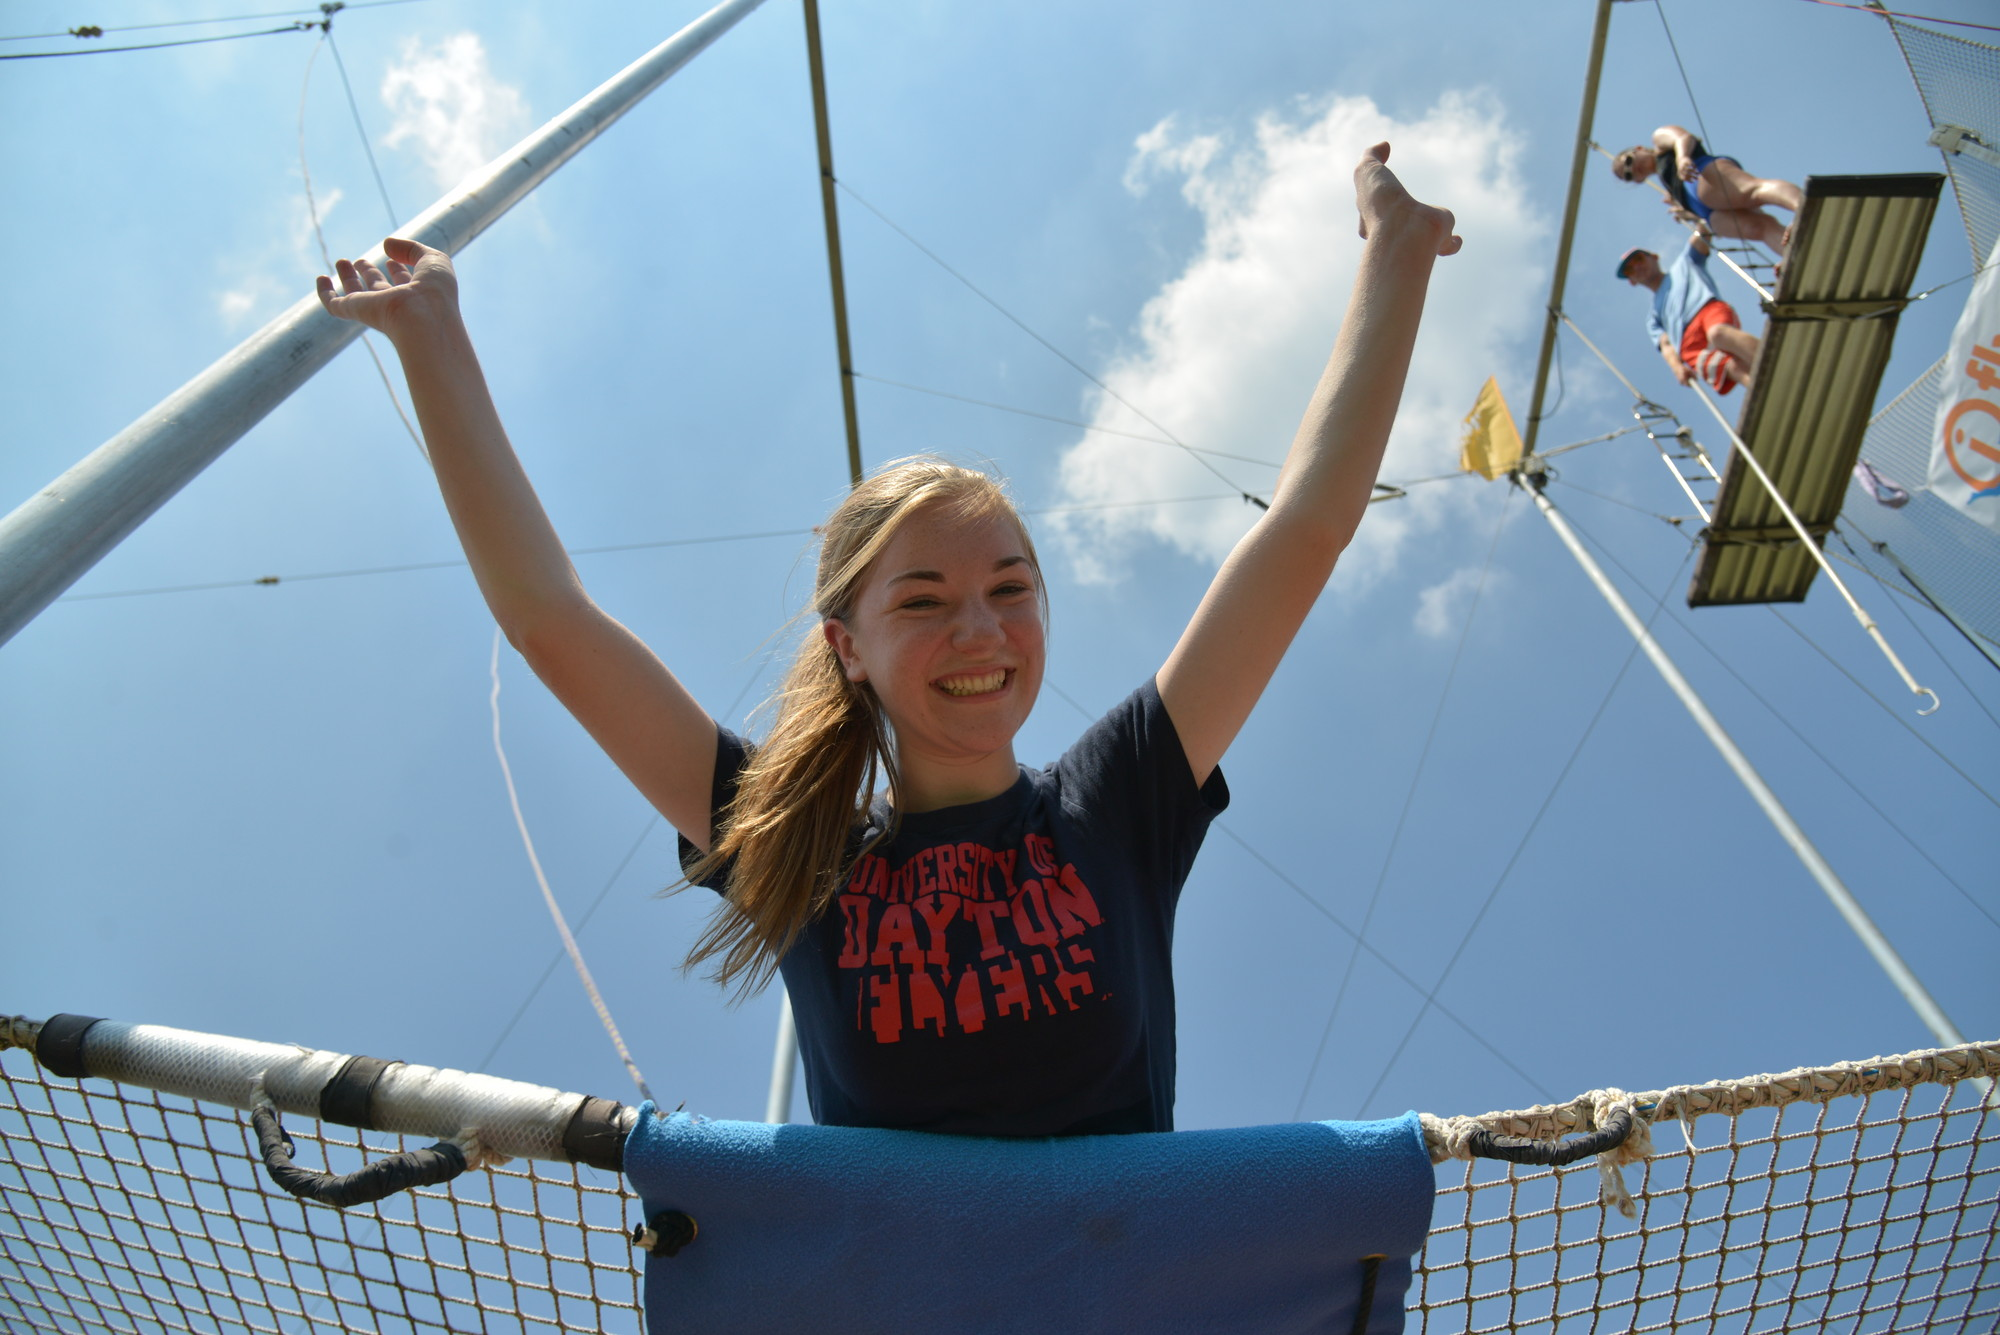 Herald intern Grace Poppe soared during her her first trapeze lesson at Eisenhower Park in East Meadow.